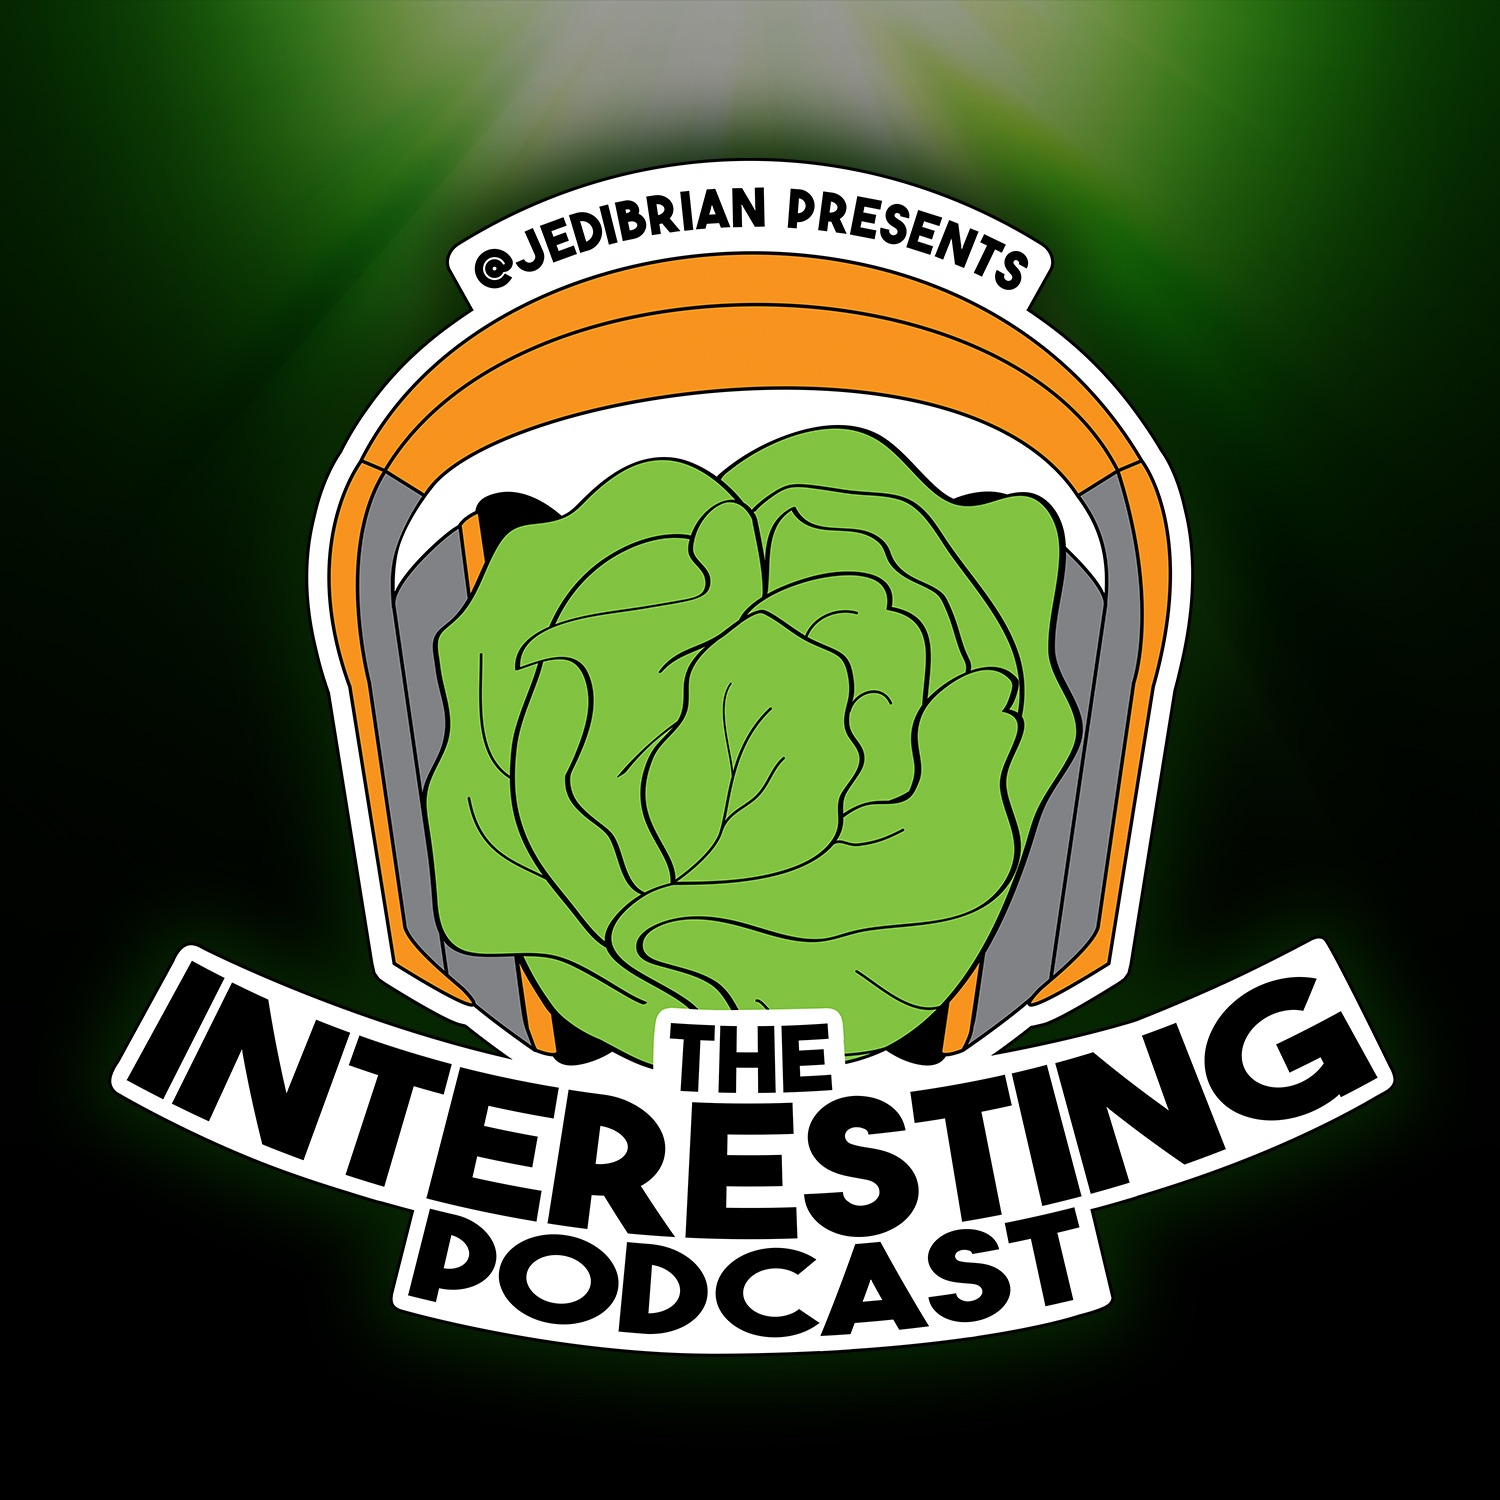 The Interesting Podcast (with Brian Ballance) podcast show image